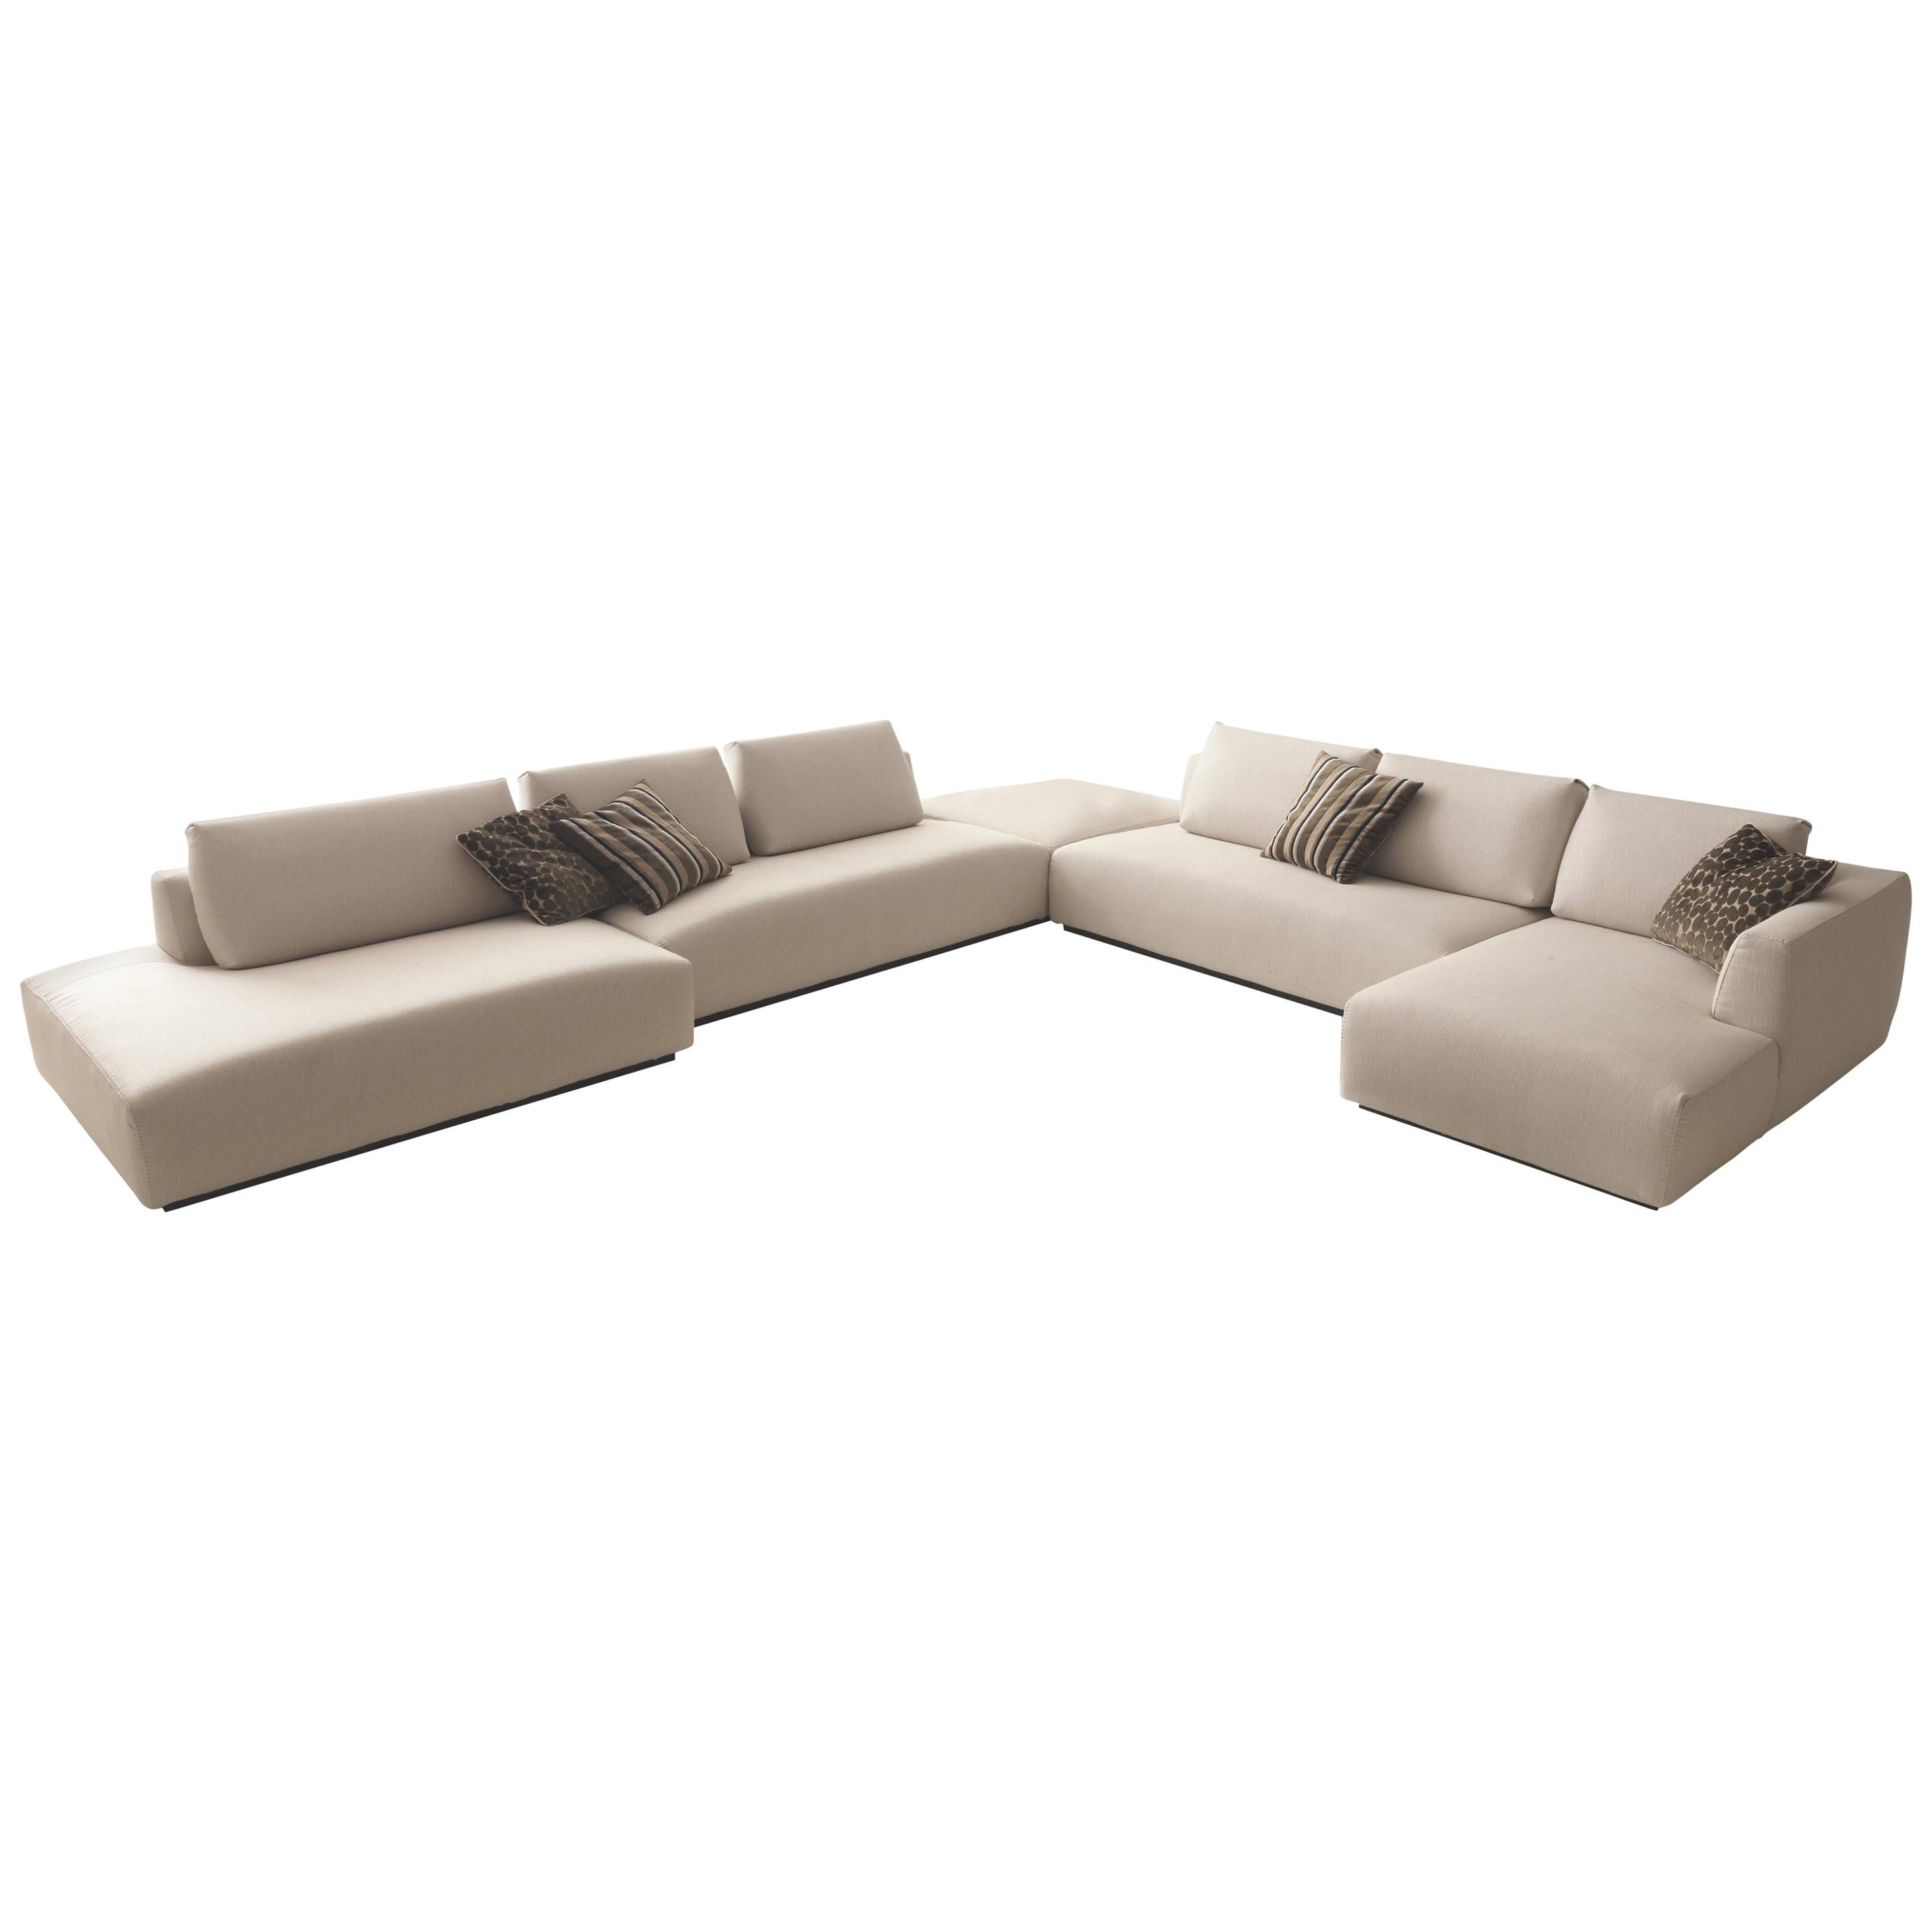 Italian design furniture sectional sofa made in italy fabric new for sale at 1stdibs